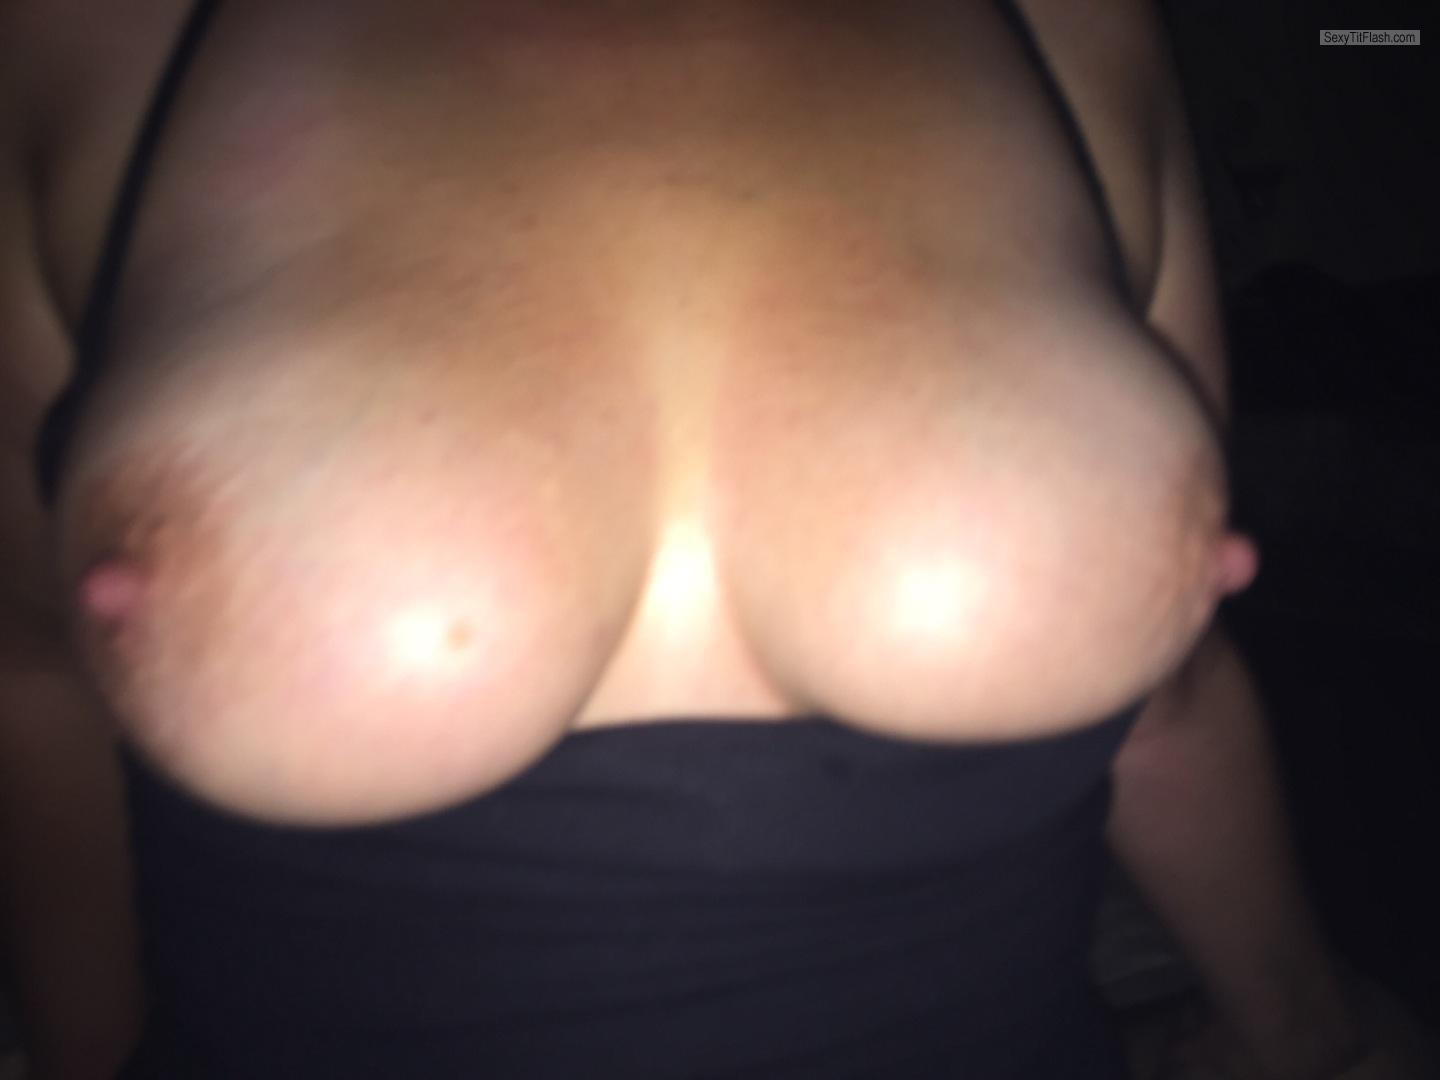 Big Tits Of A Friend B